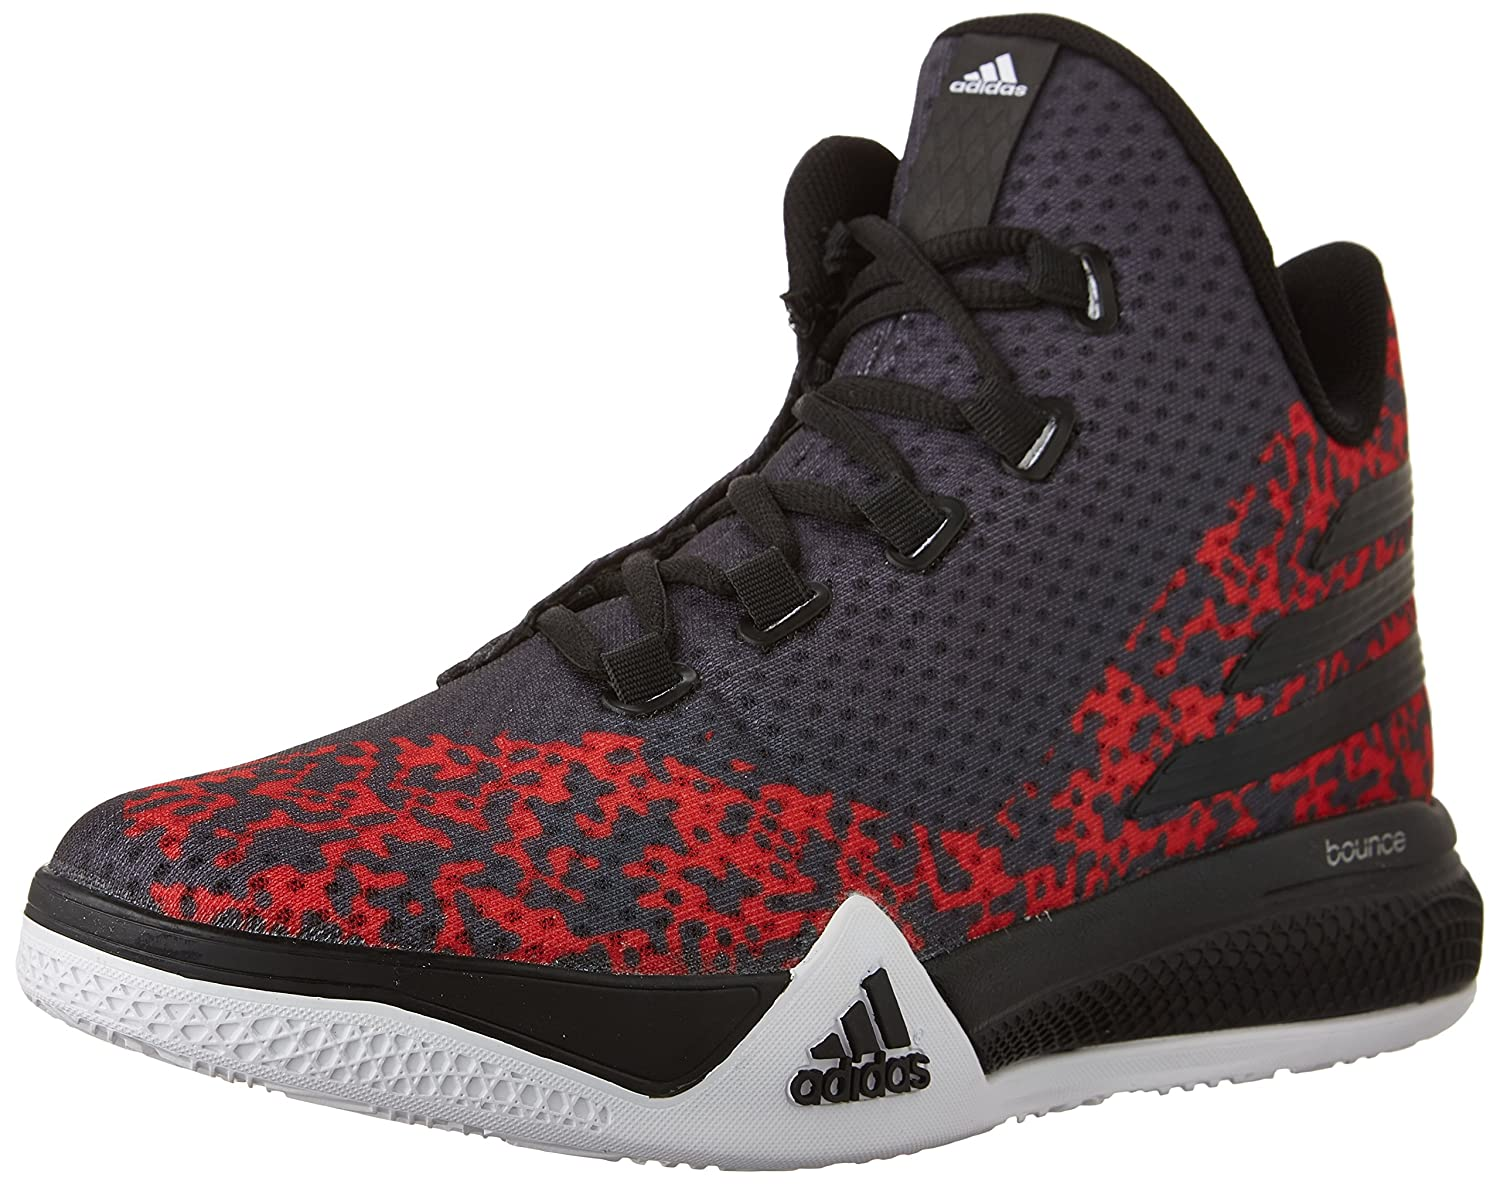 adidas Performance Men s Light Em Up 2 Basketball Shoes Black White Scarlet  12.5 D(M) US  Buy Online at Low Prices in India - Amazon.in b399c1225